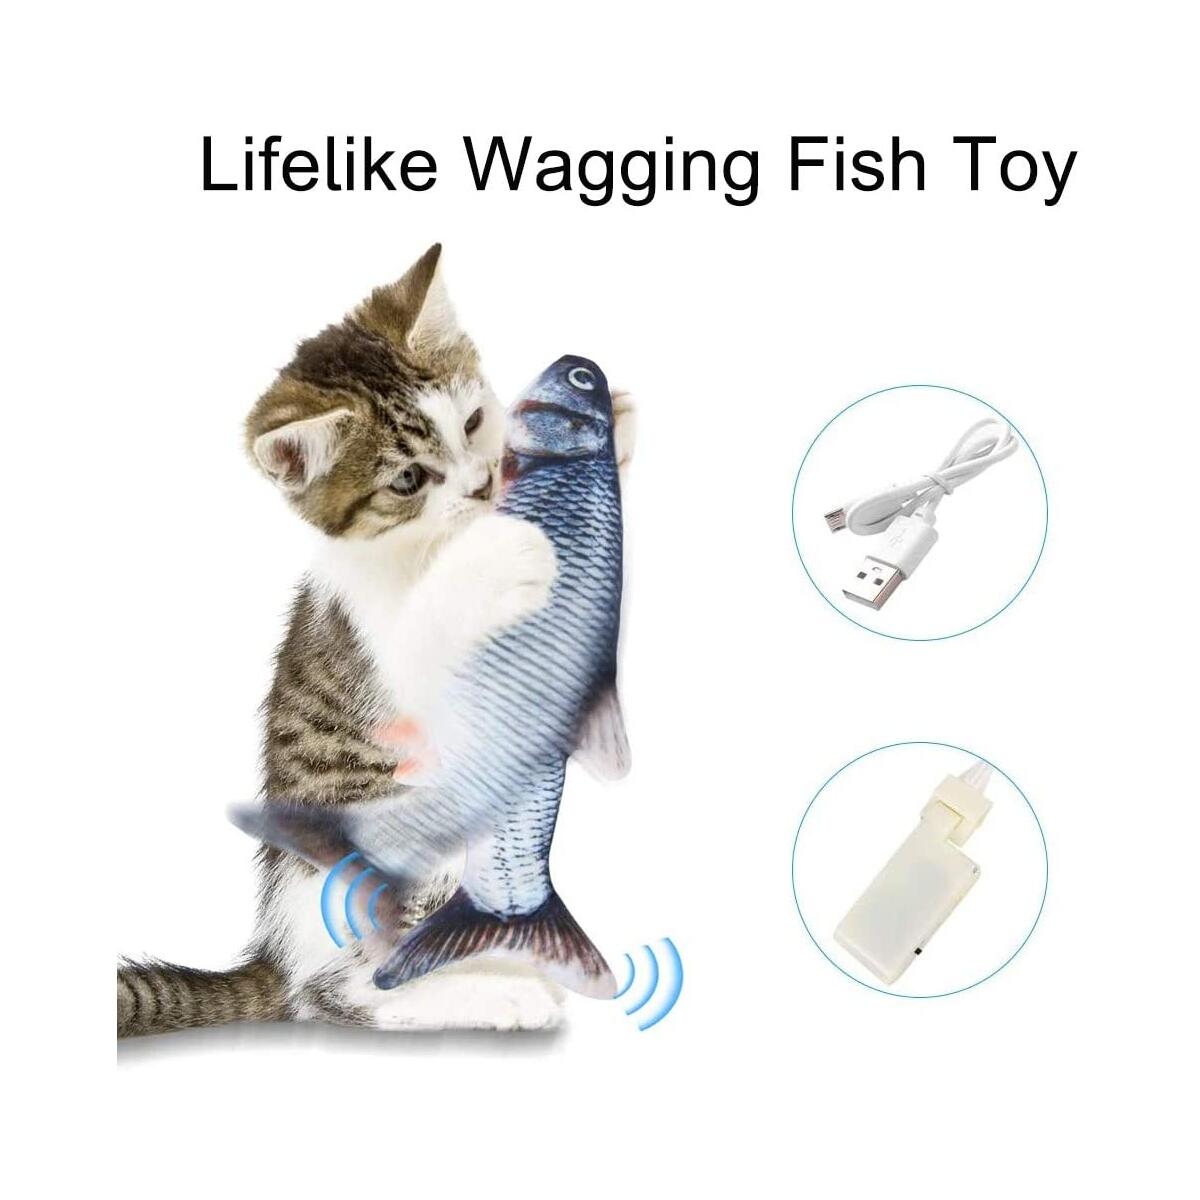 ILamourCar Simulation Fish Toy for Cats, Realistic Plush Simulation Electric Wagging Fish Cat Kicker Toy, Funny Interactive Pets Pillow Chew Bite Kick Supplies for Cat Kitten Kitty - Carp